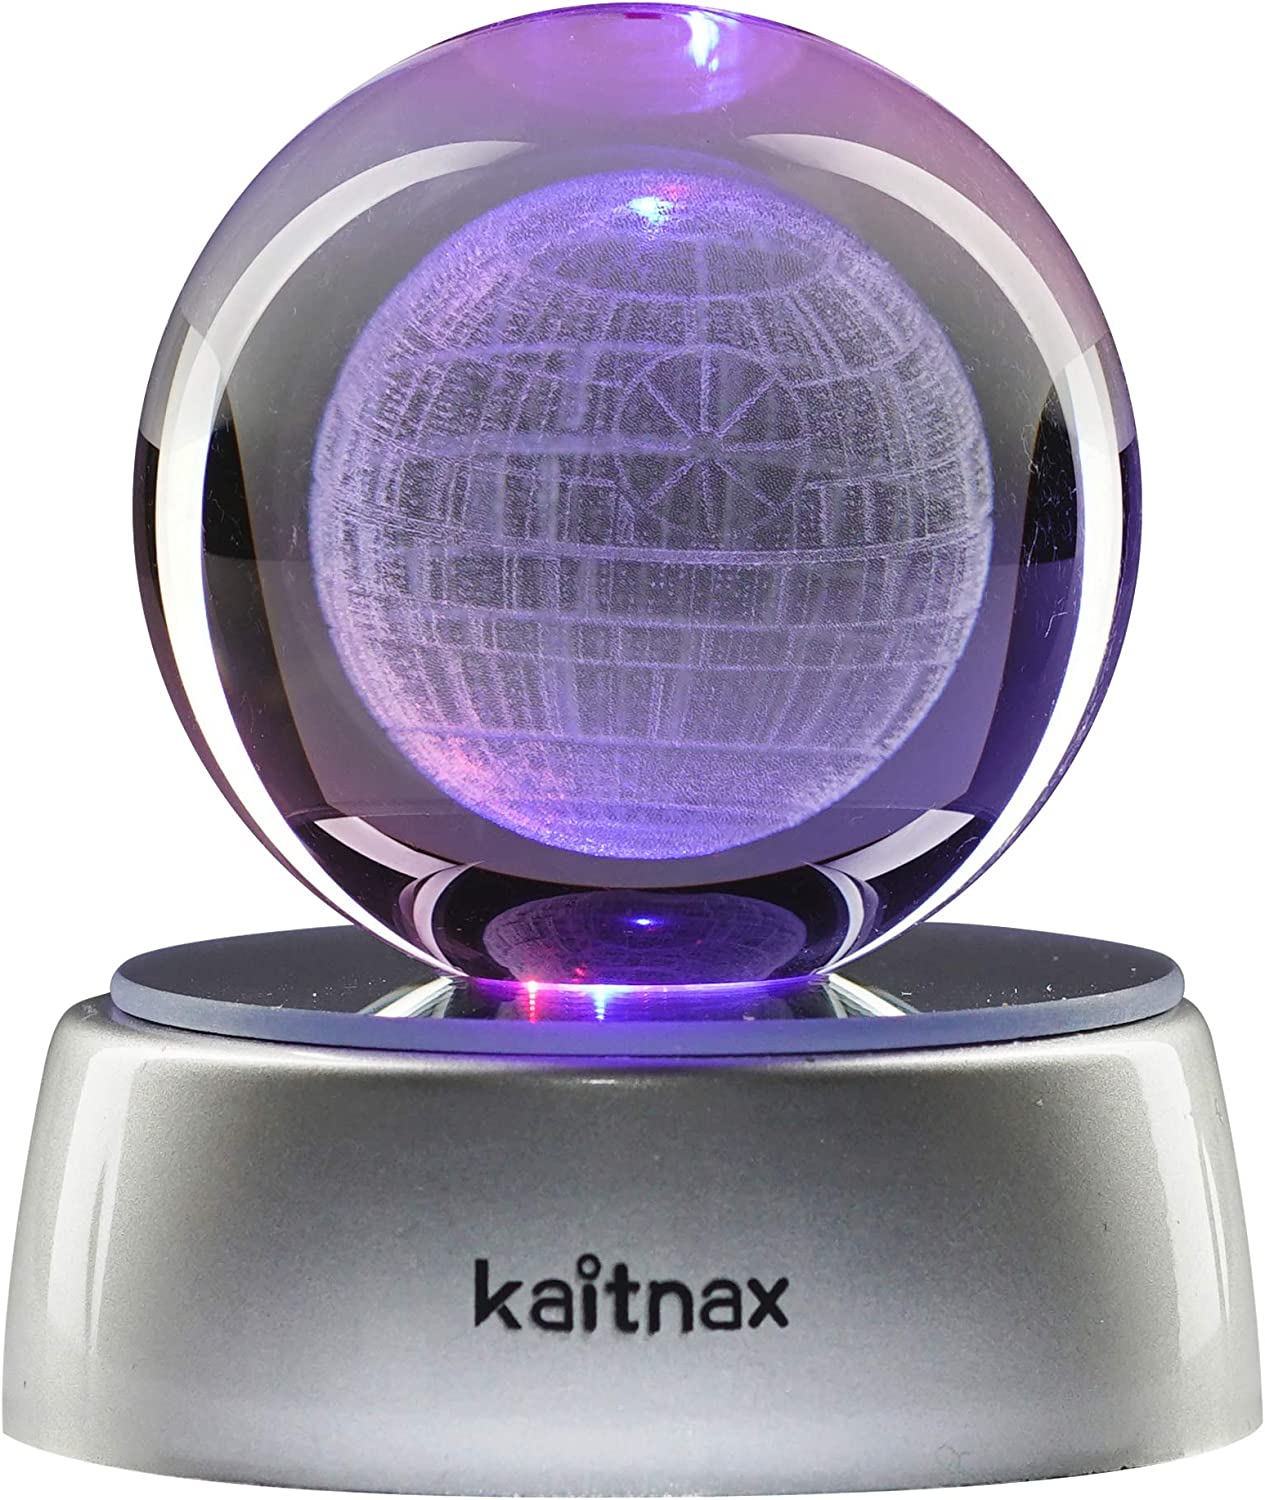 3D Laser Etched Crystal Ball(50mm) Puzzle with LED Base (Death Star)